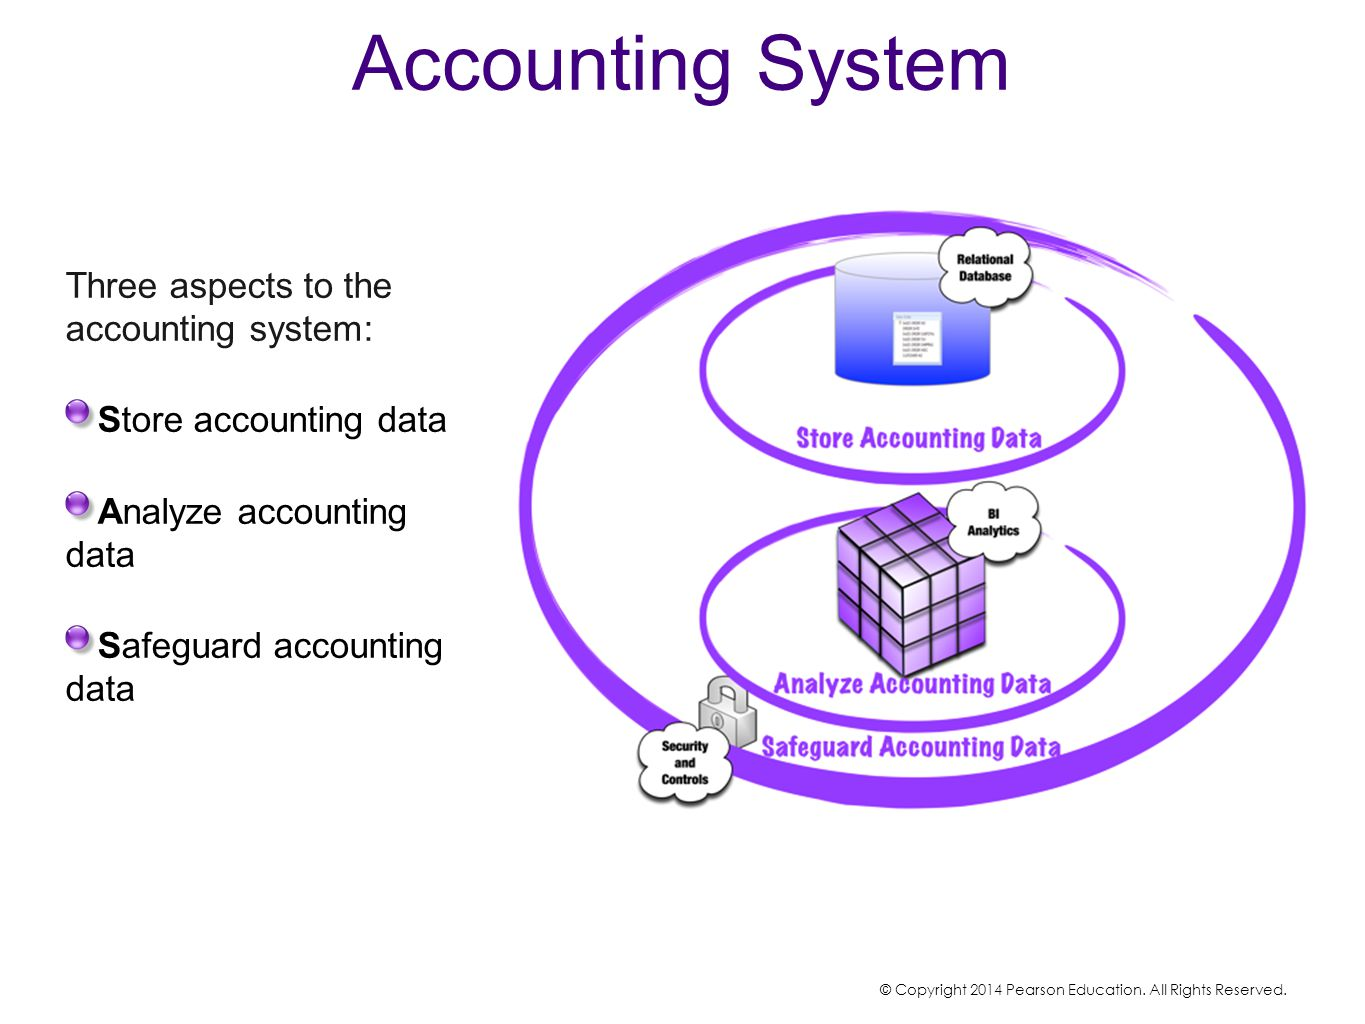 Accounting System Three aspects to the accounting system: